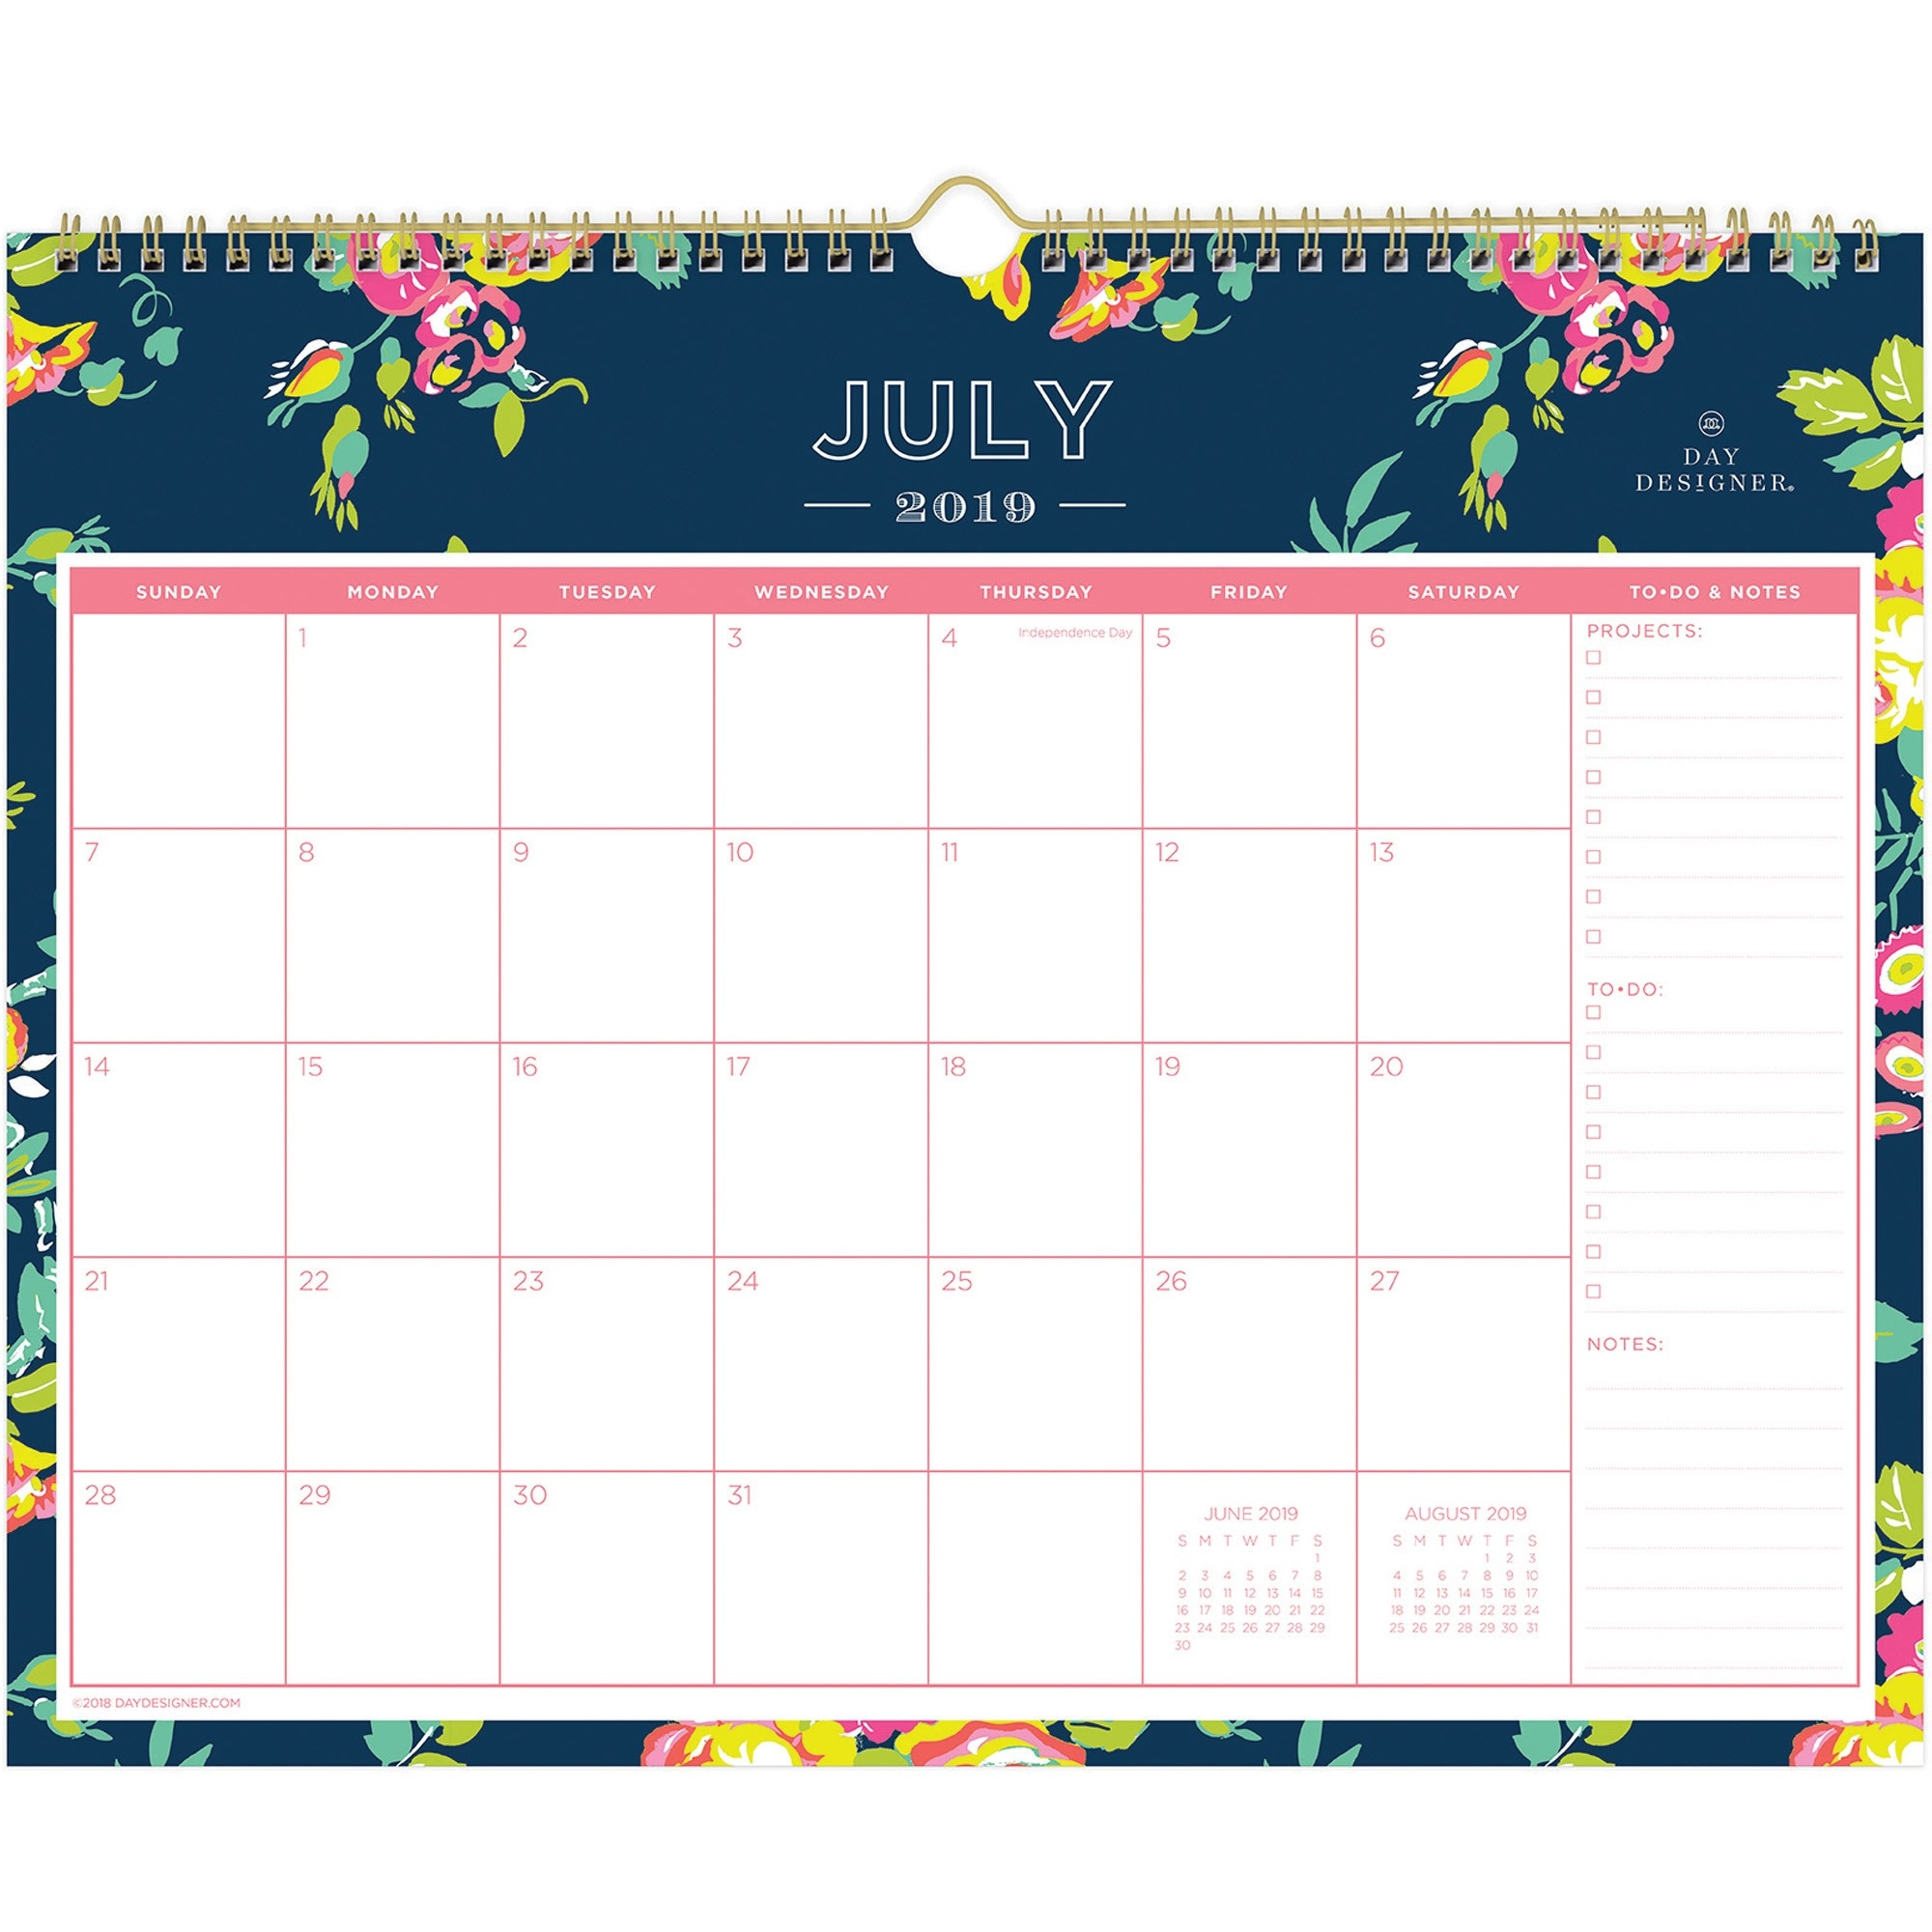 Blue Sky Peyton Navy Floral Wall Calendar - Academic - Yes - Monthly - 1  Year - July 2019 Till June 2020 - Twin Wire - Wall Mountable - Navy, Navy  Official Navy Calendar Template With Julian Dates 2020